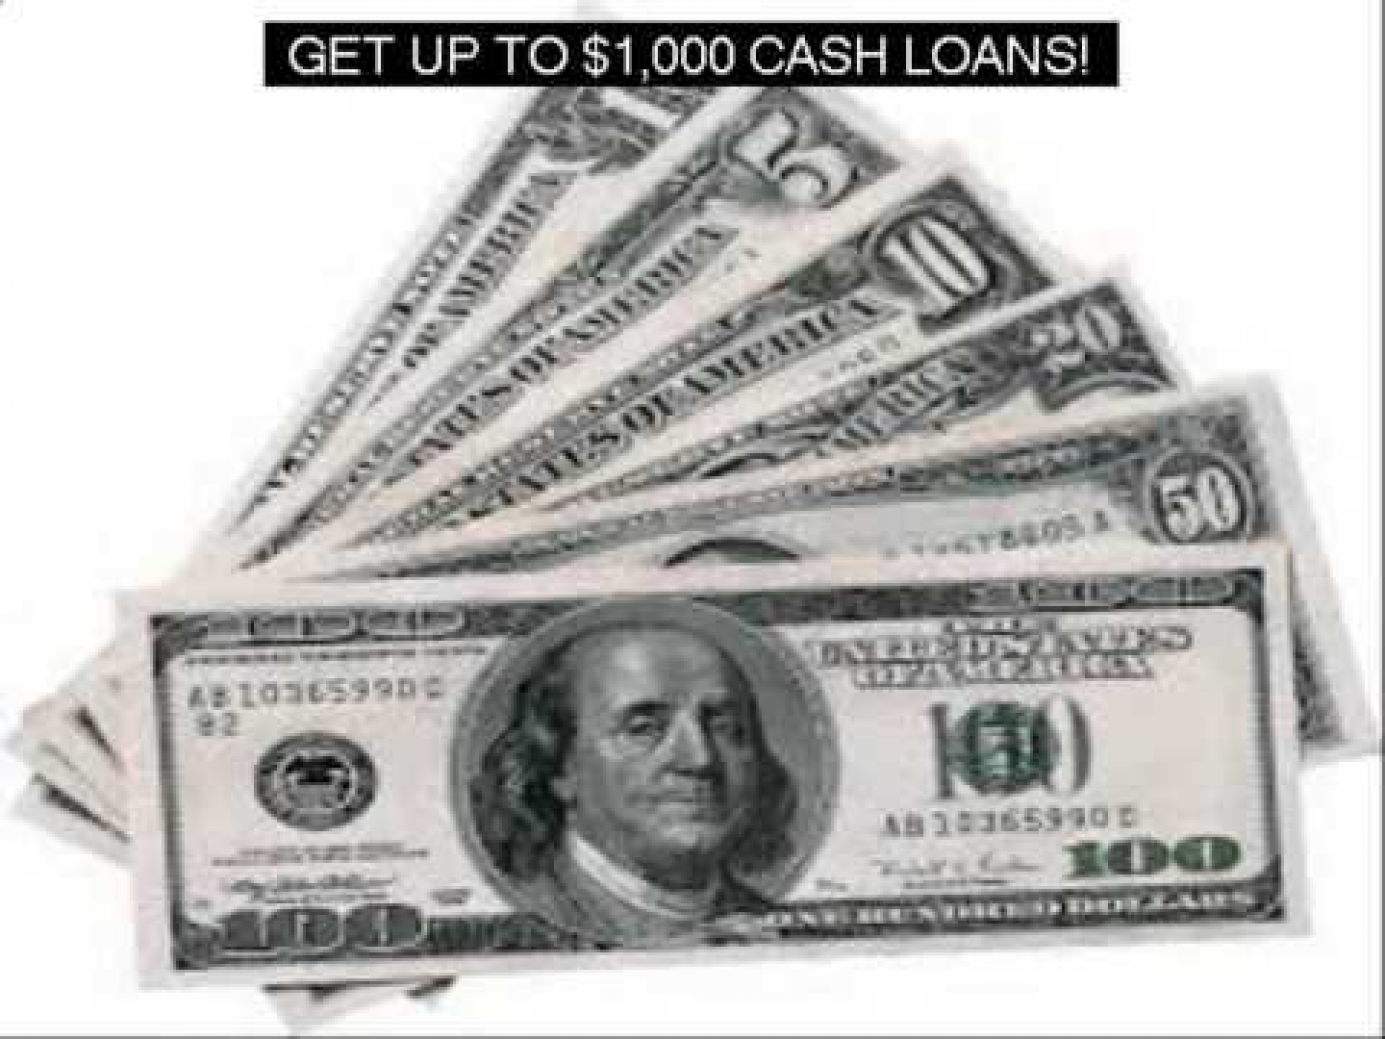 Cash loans will get you into more financial debt